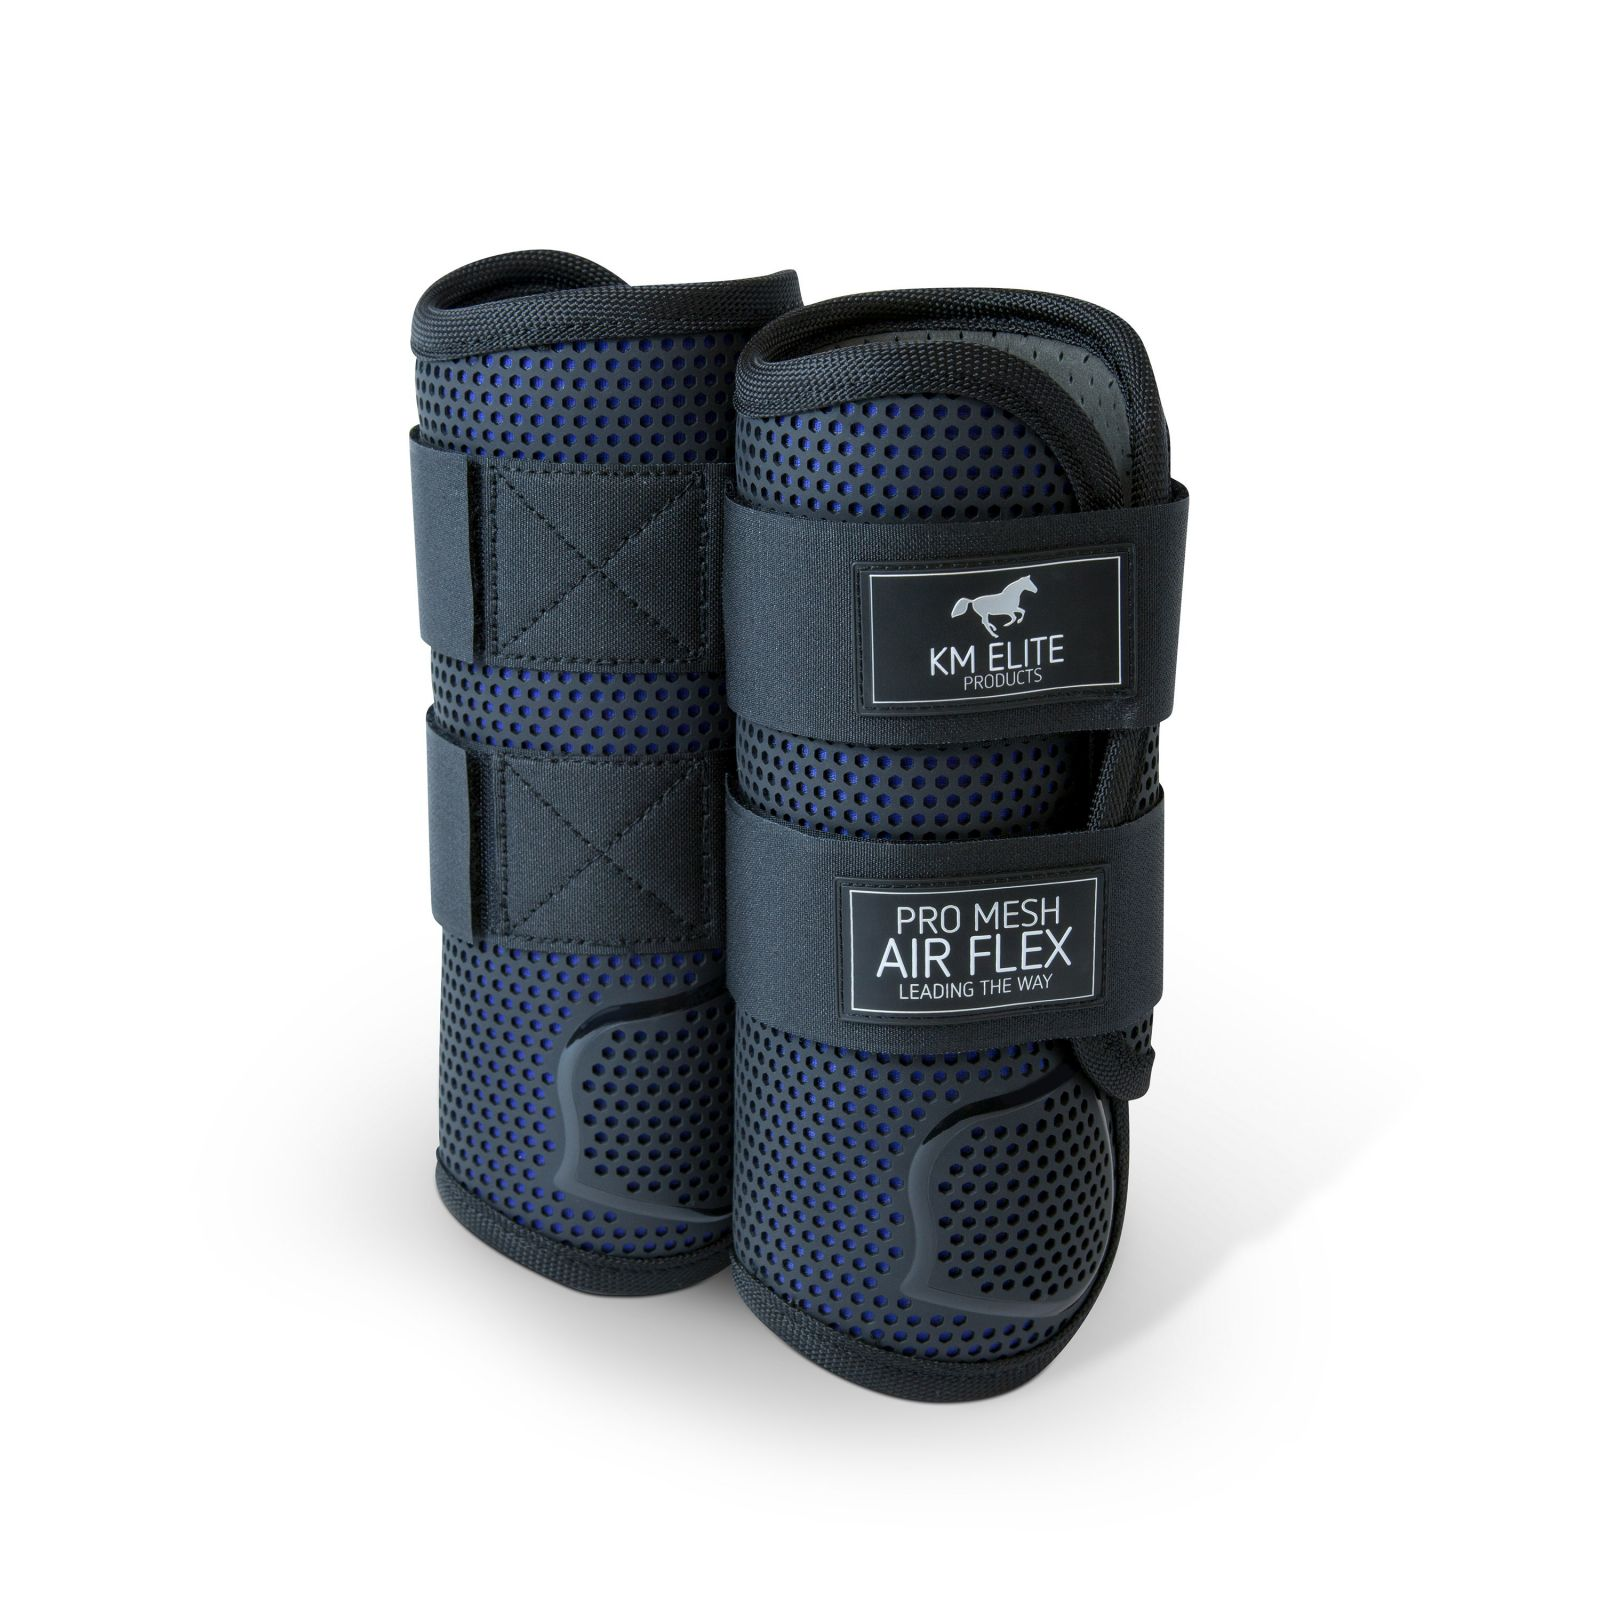 Pro Mesh Event Boot Set - FREE HIND SET